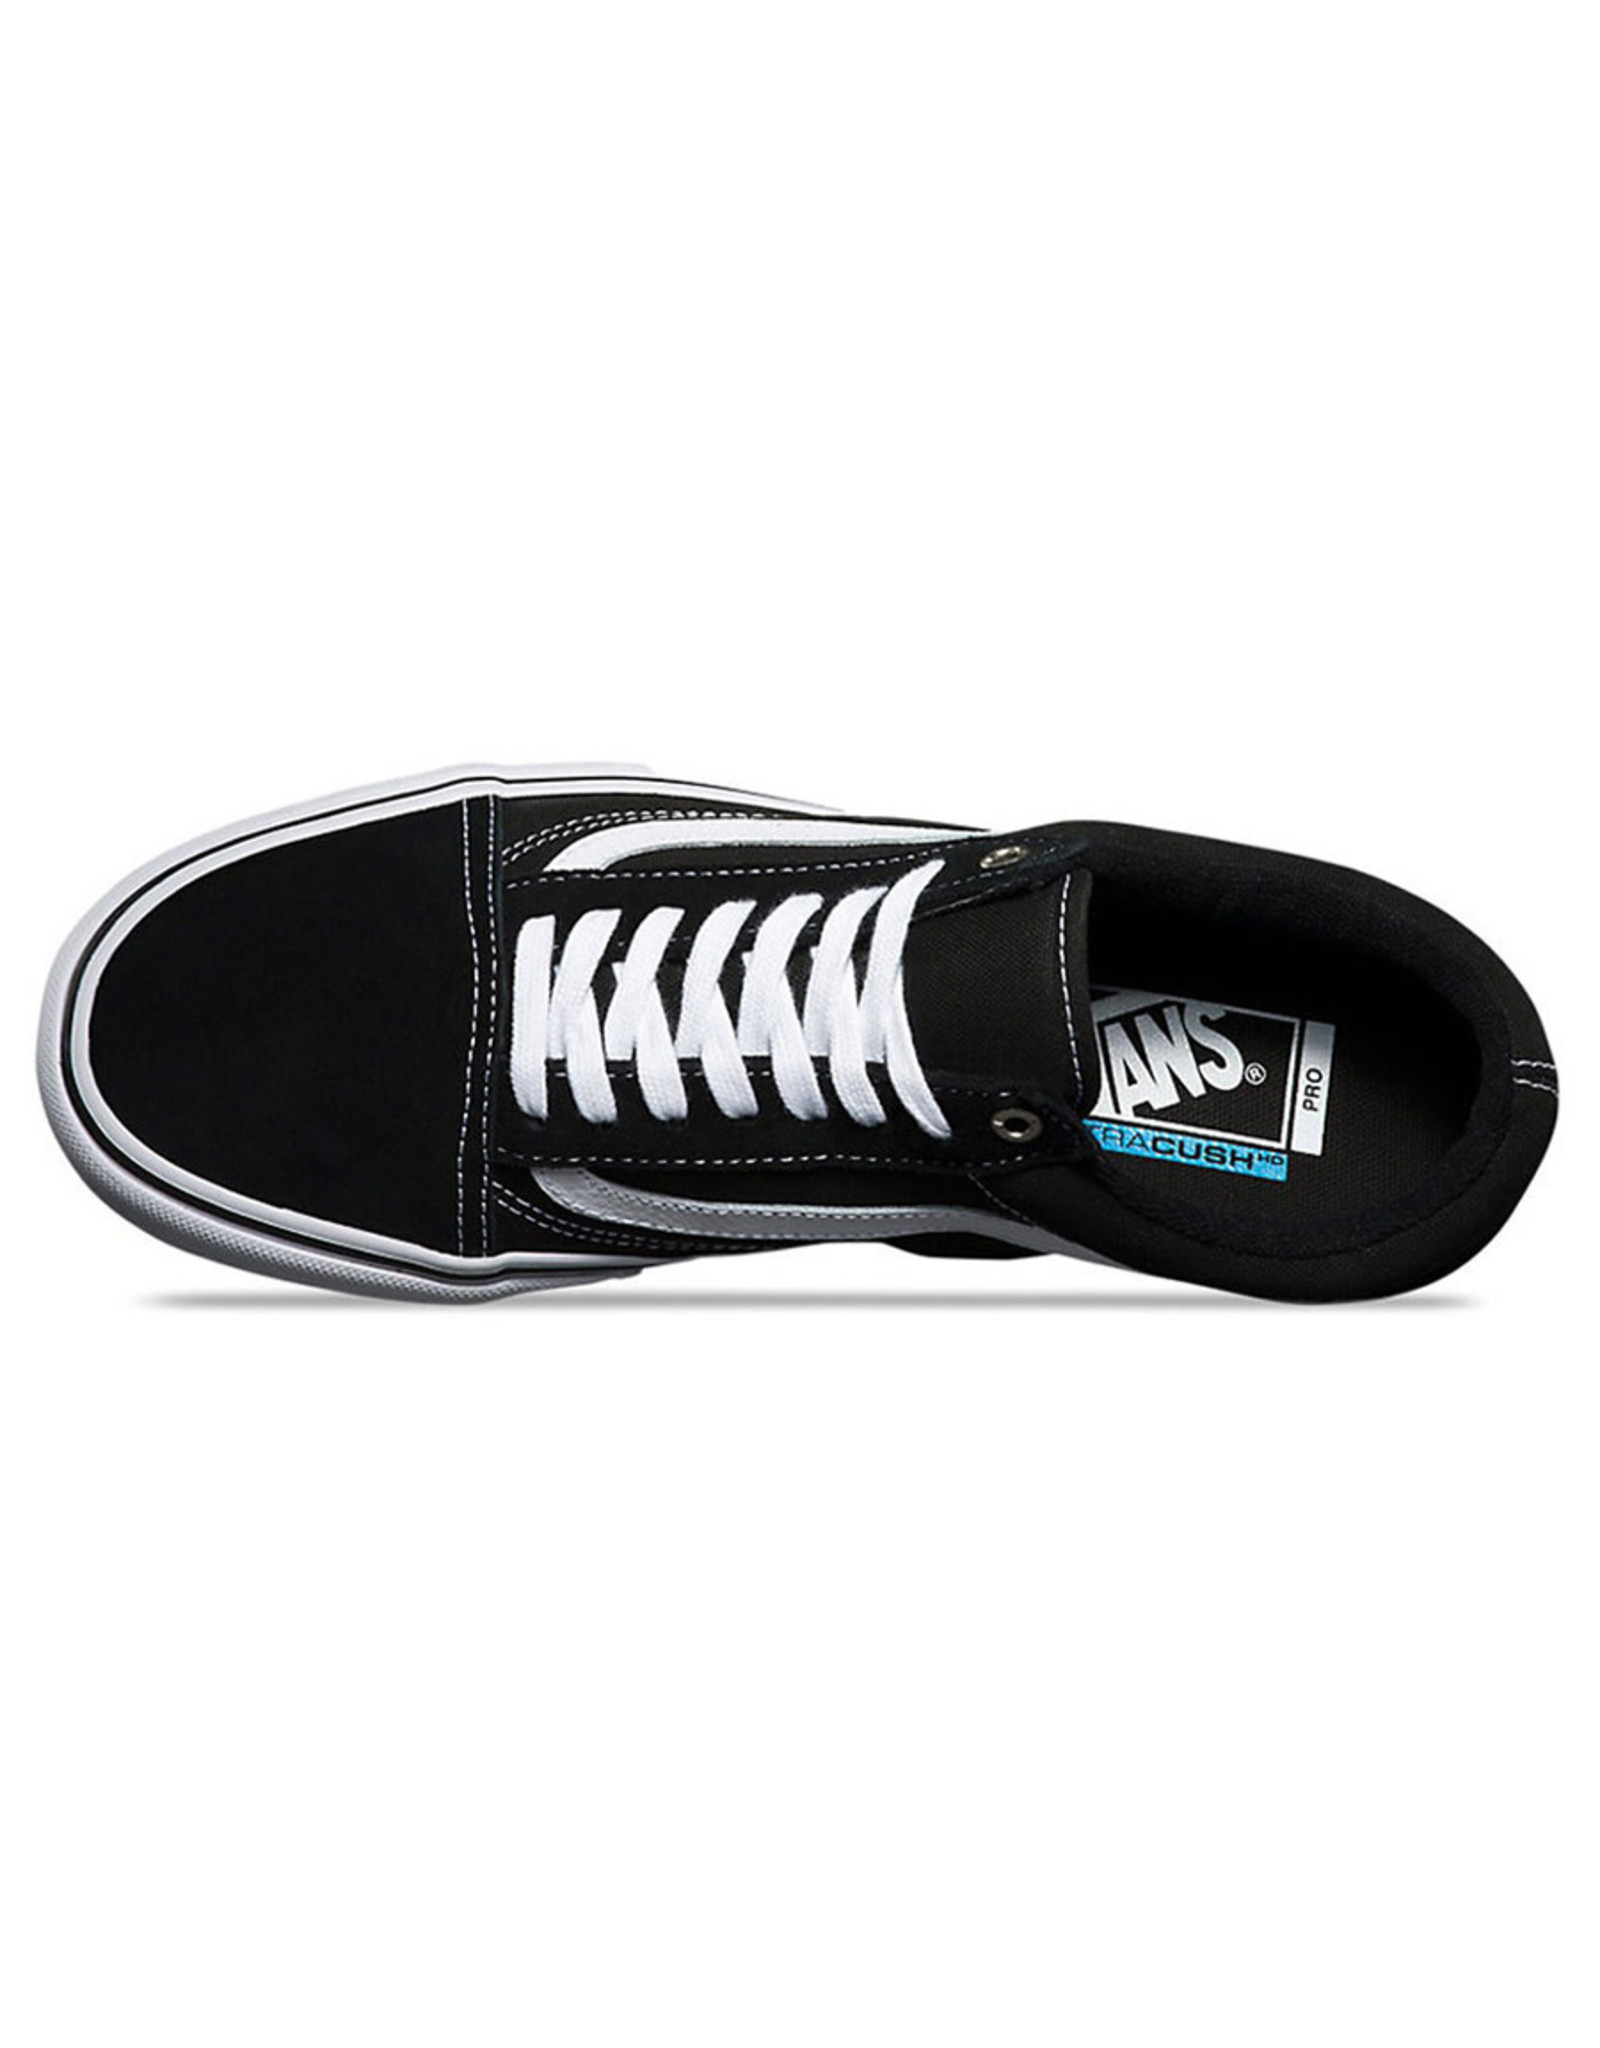 Vans Shoes Vans Shoe Pro Old Skool (Black/White)